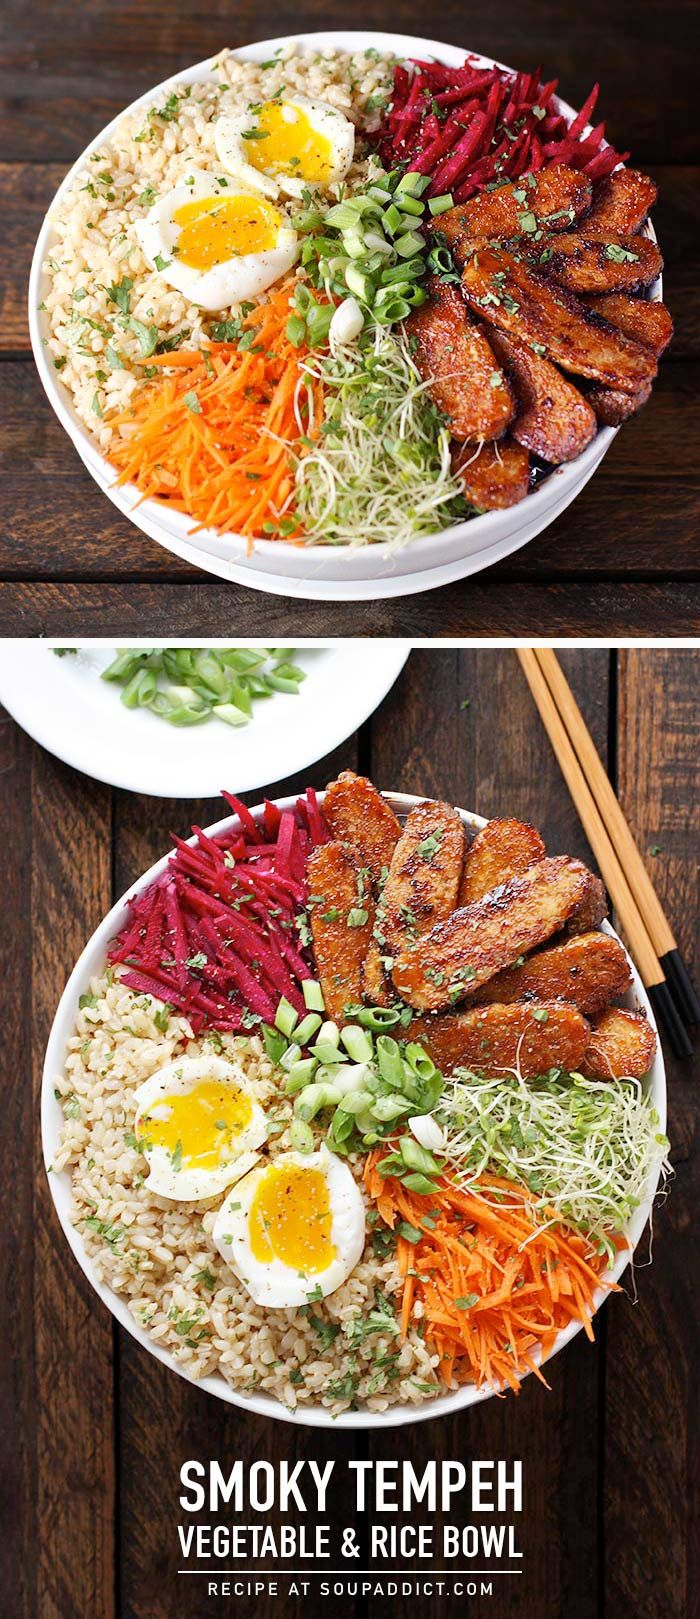 Smoky tempeh with fresh vegetables and sprouts over rice and topped with an egg makes for a healthy, and delicious meal. Recipe at SoupAddict.com